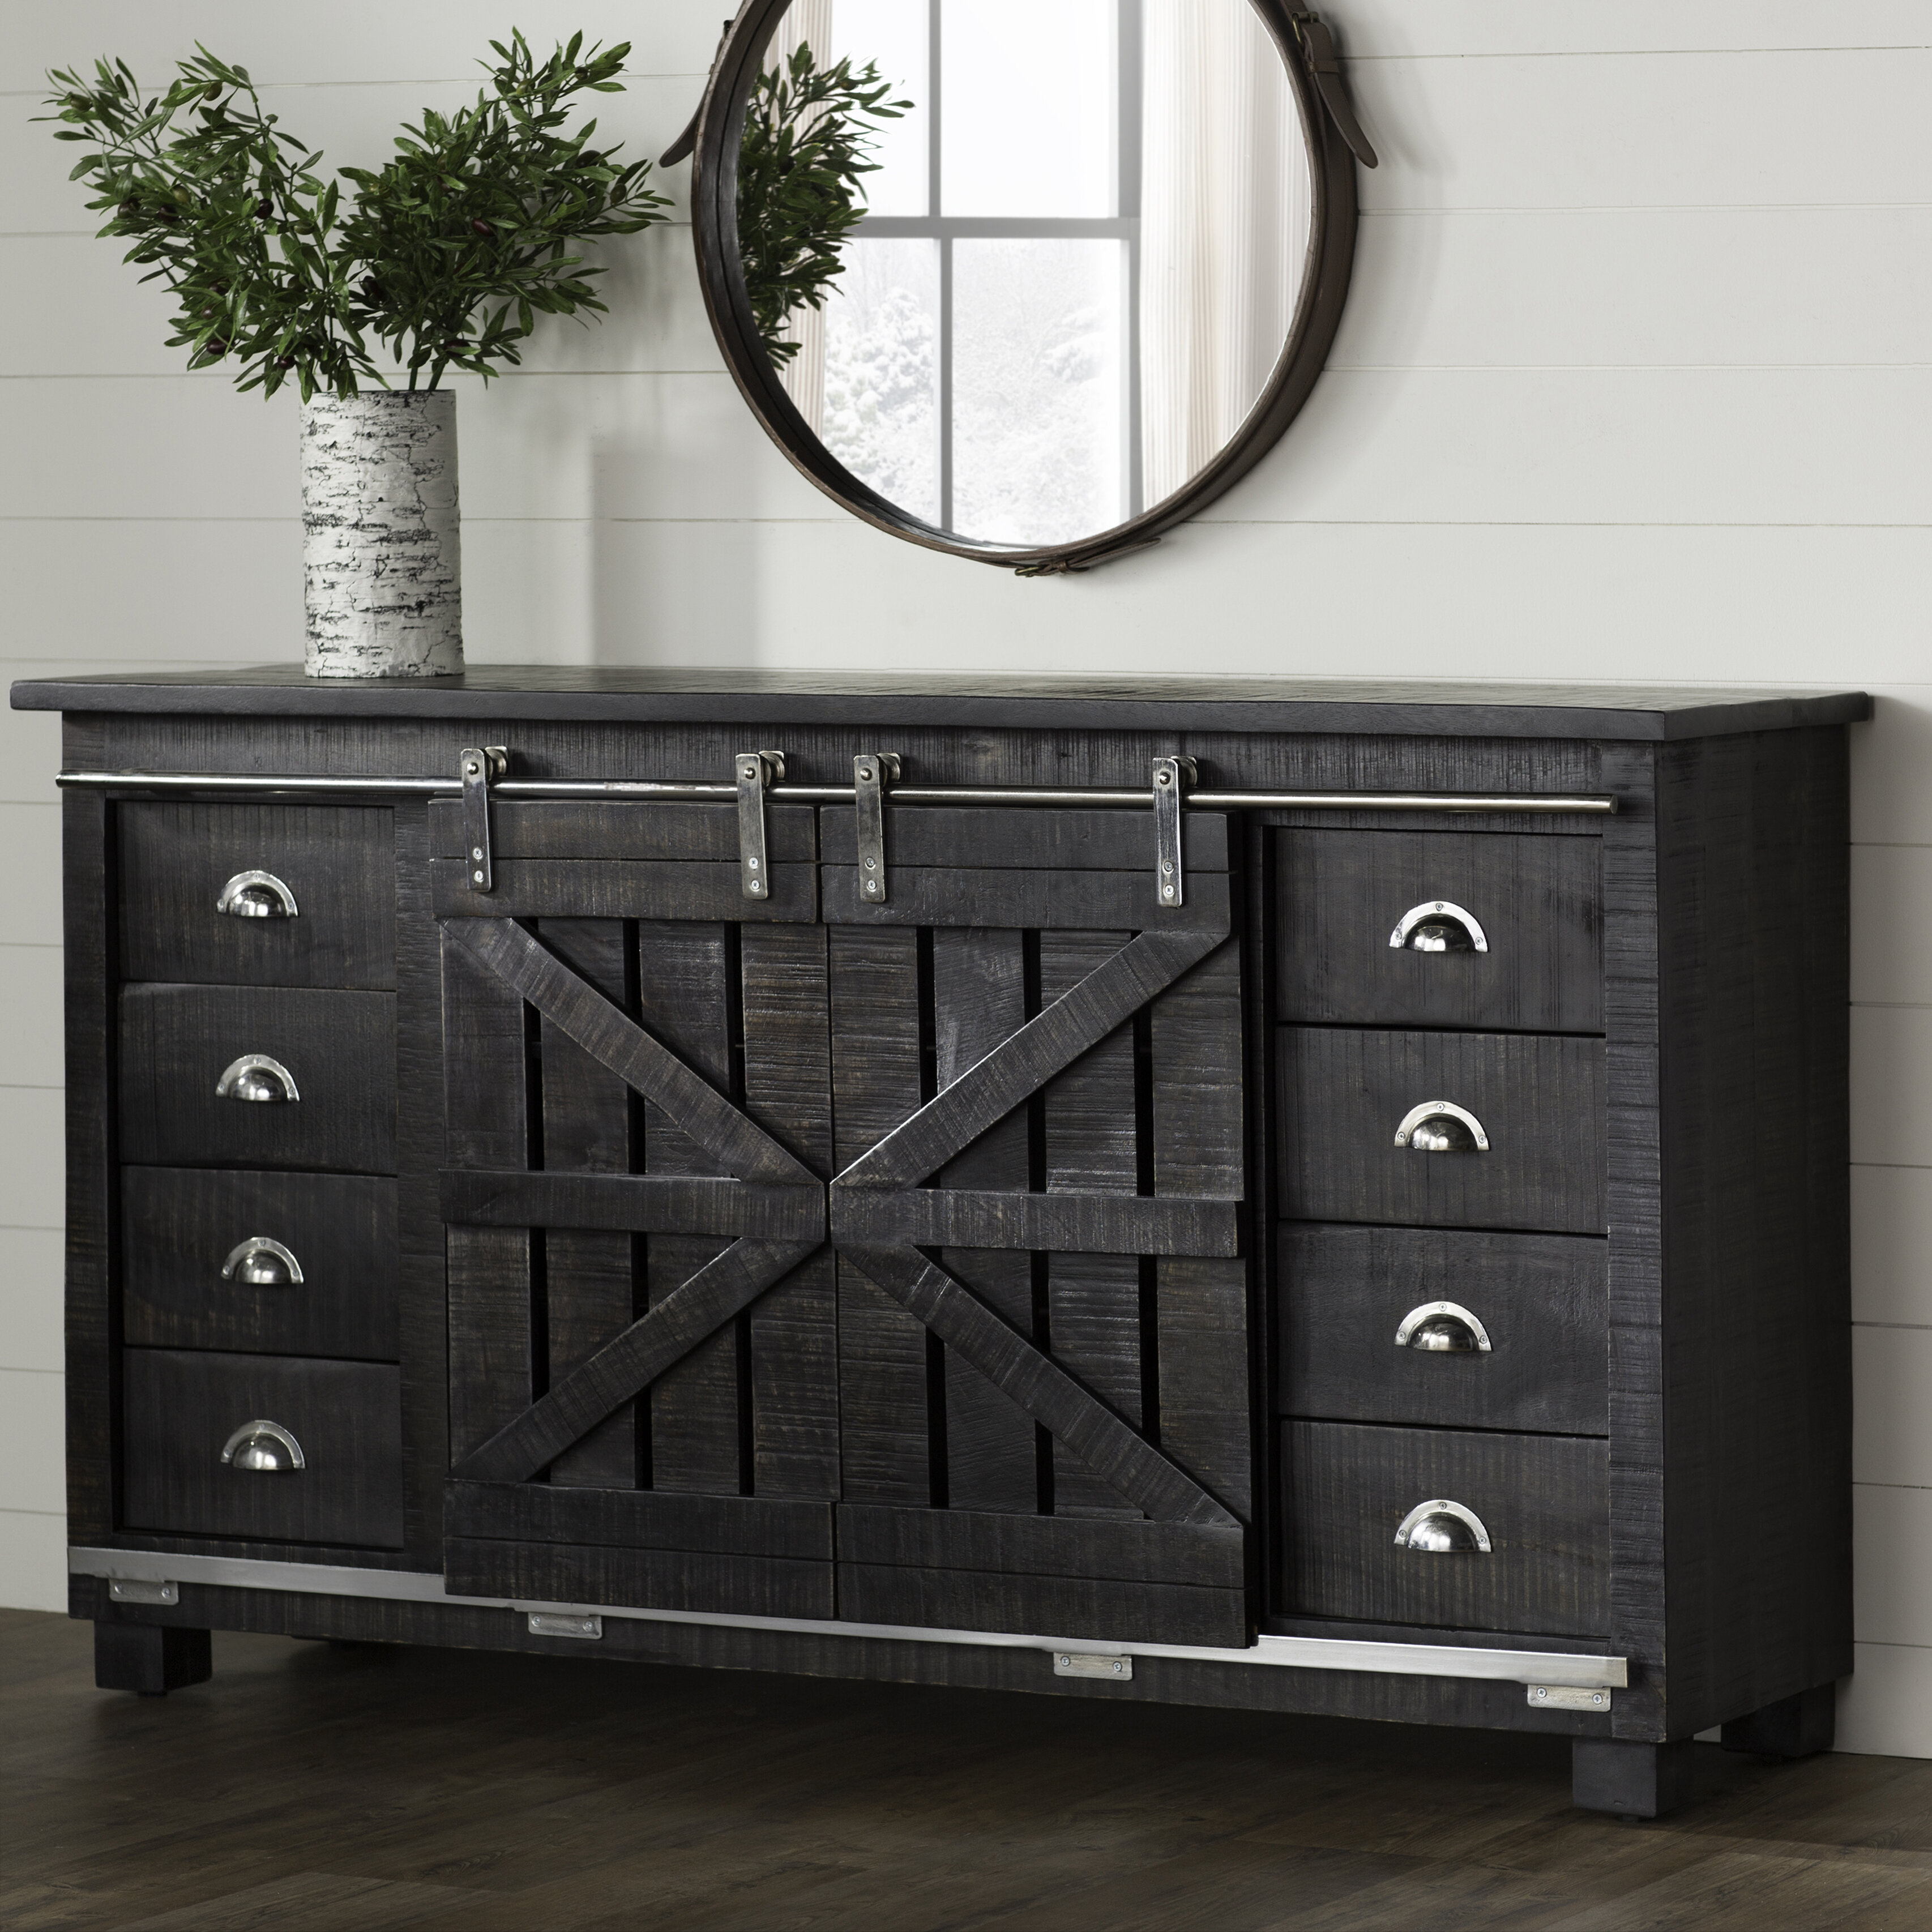 Laurel Foundry Modern Farmhouse Daub Credenza intended for Candide Wood Credenzas (Image 20 of 30)